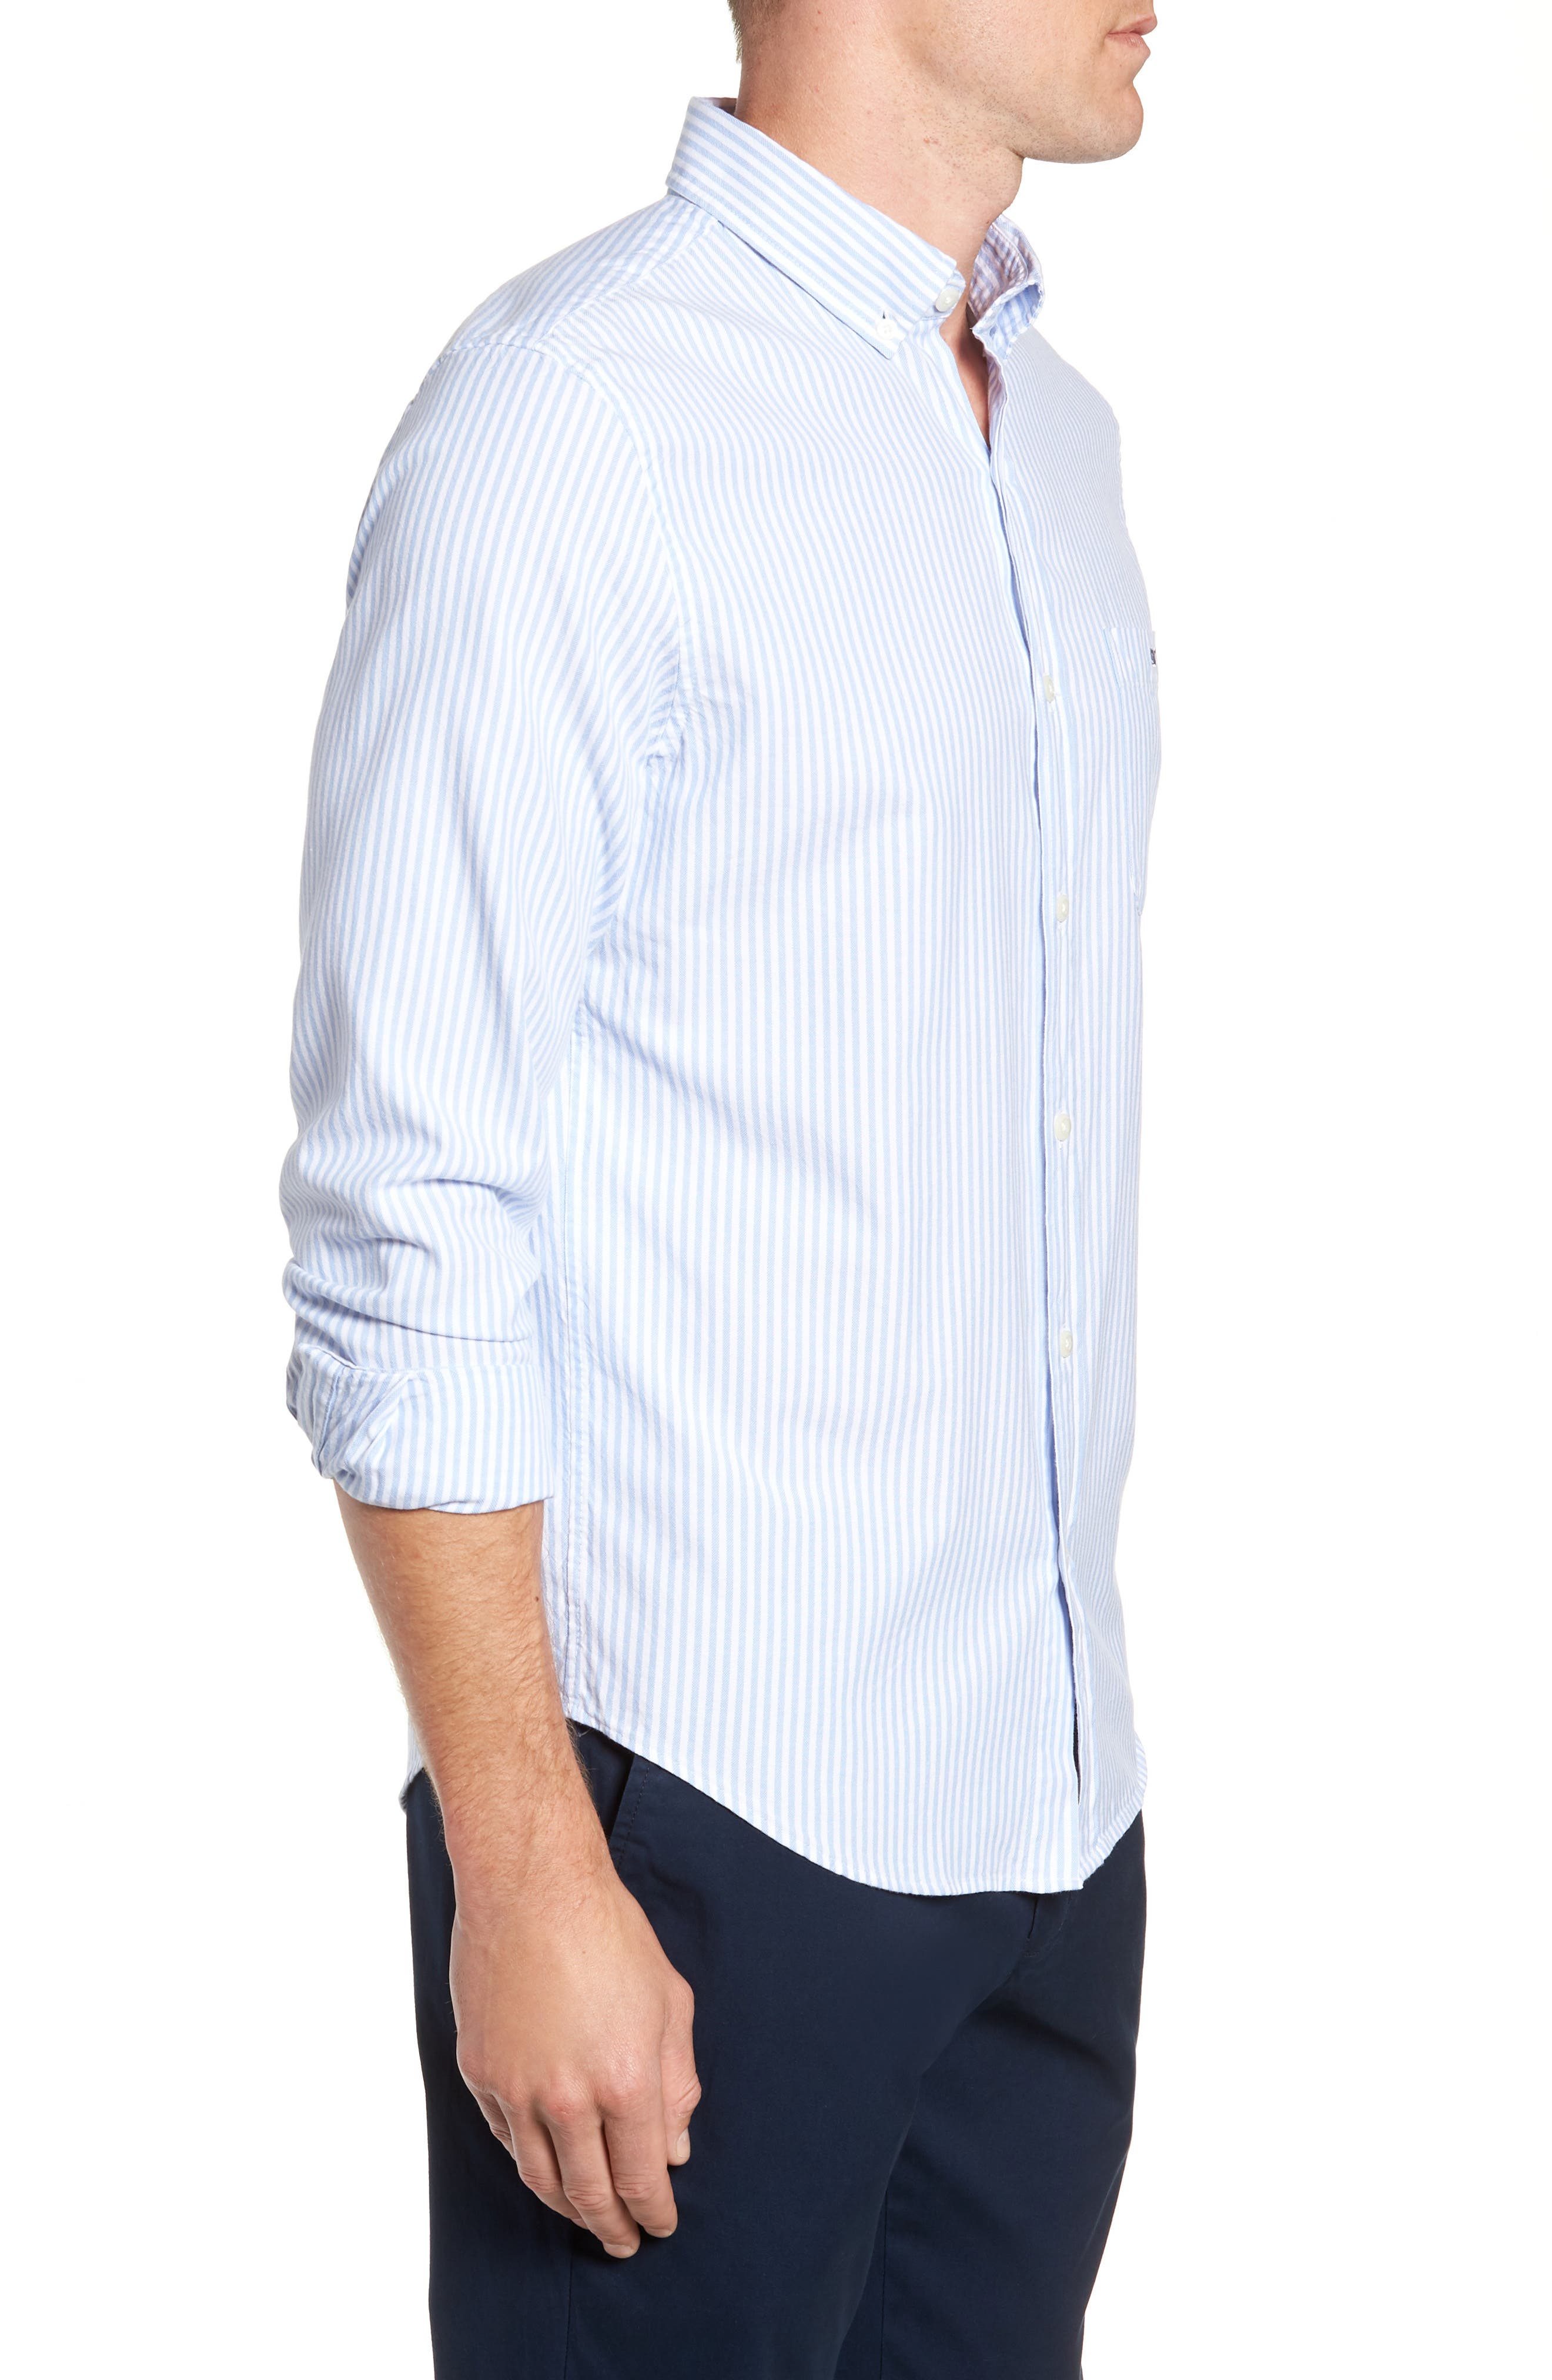 Tiloo Cay Slim Stretch Tucker Sport Shirt,                             Alternate thumbnail 4, color,                             484